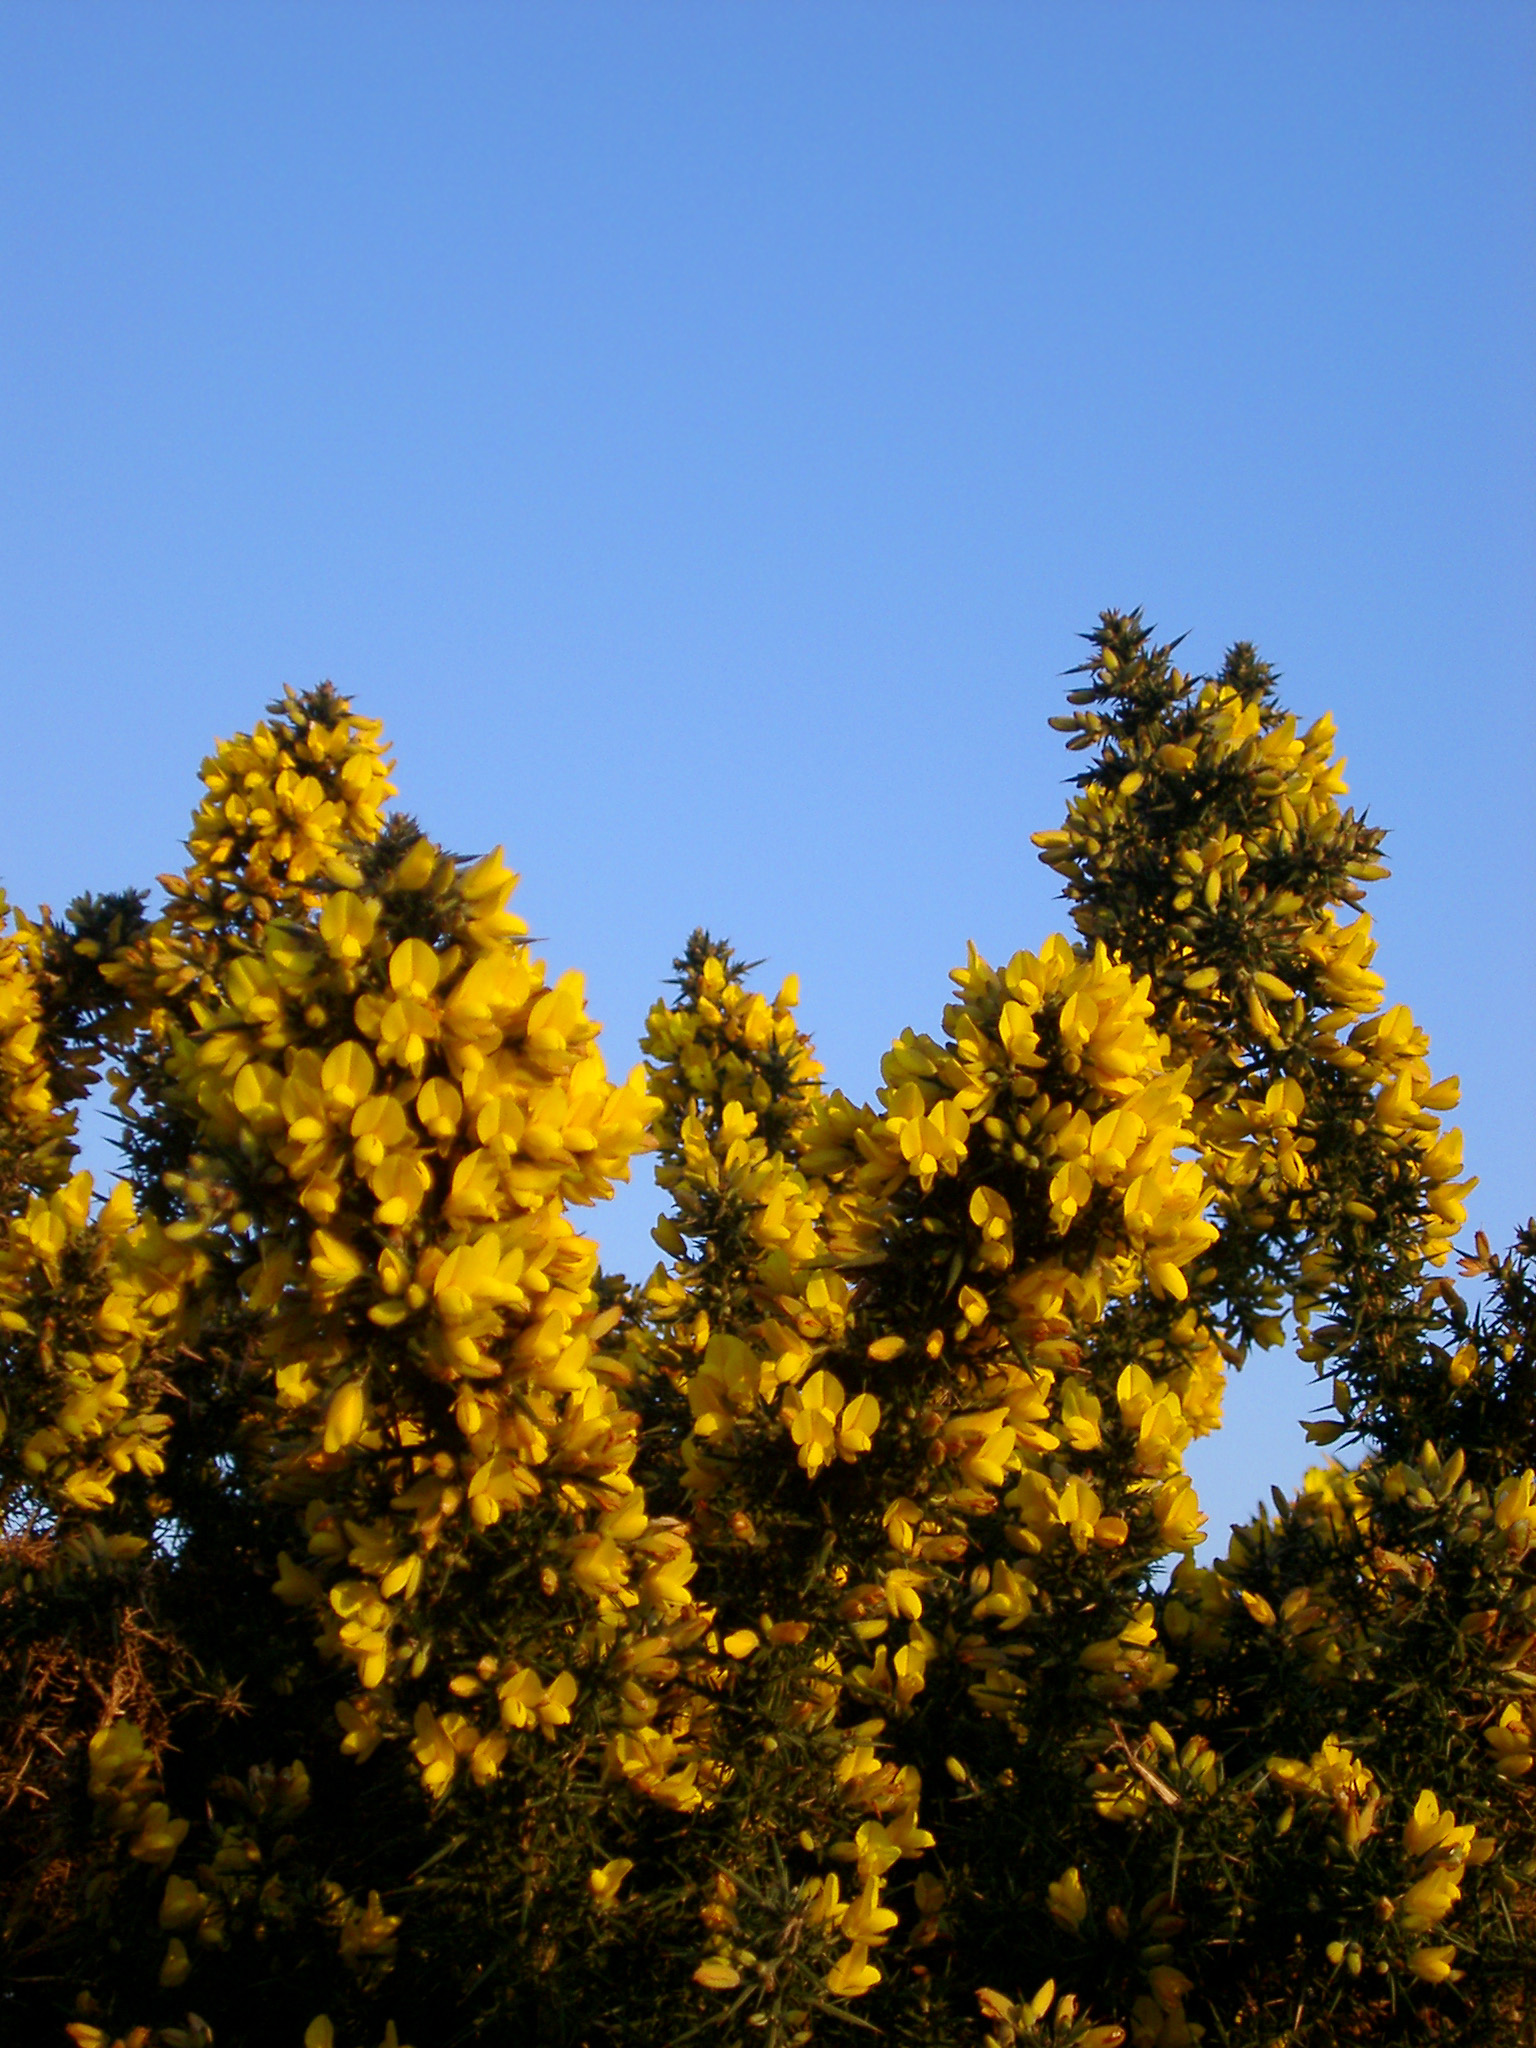 yellow flowers of a gorse pictured against a brilliant blue sky